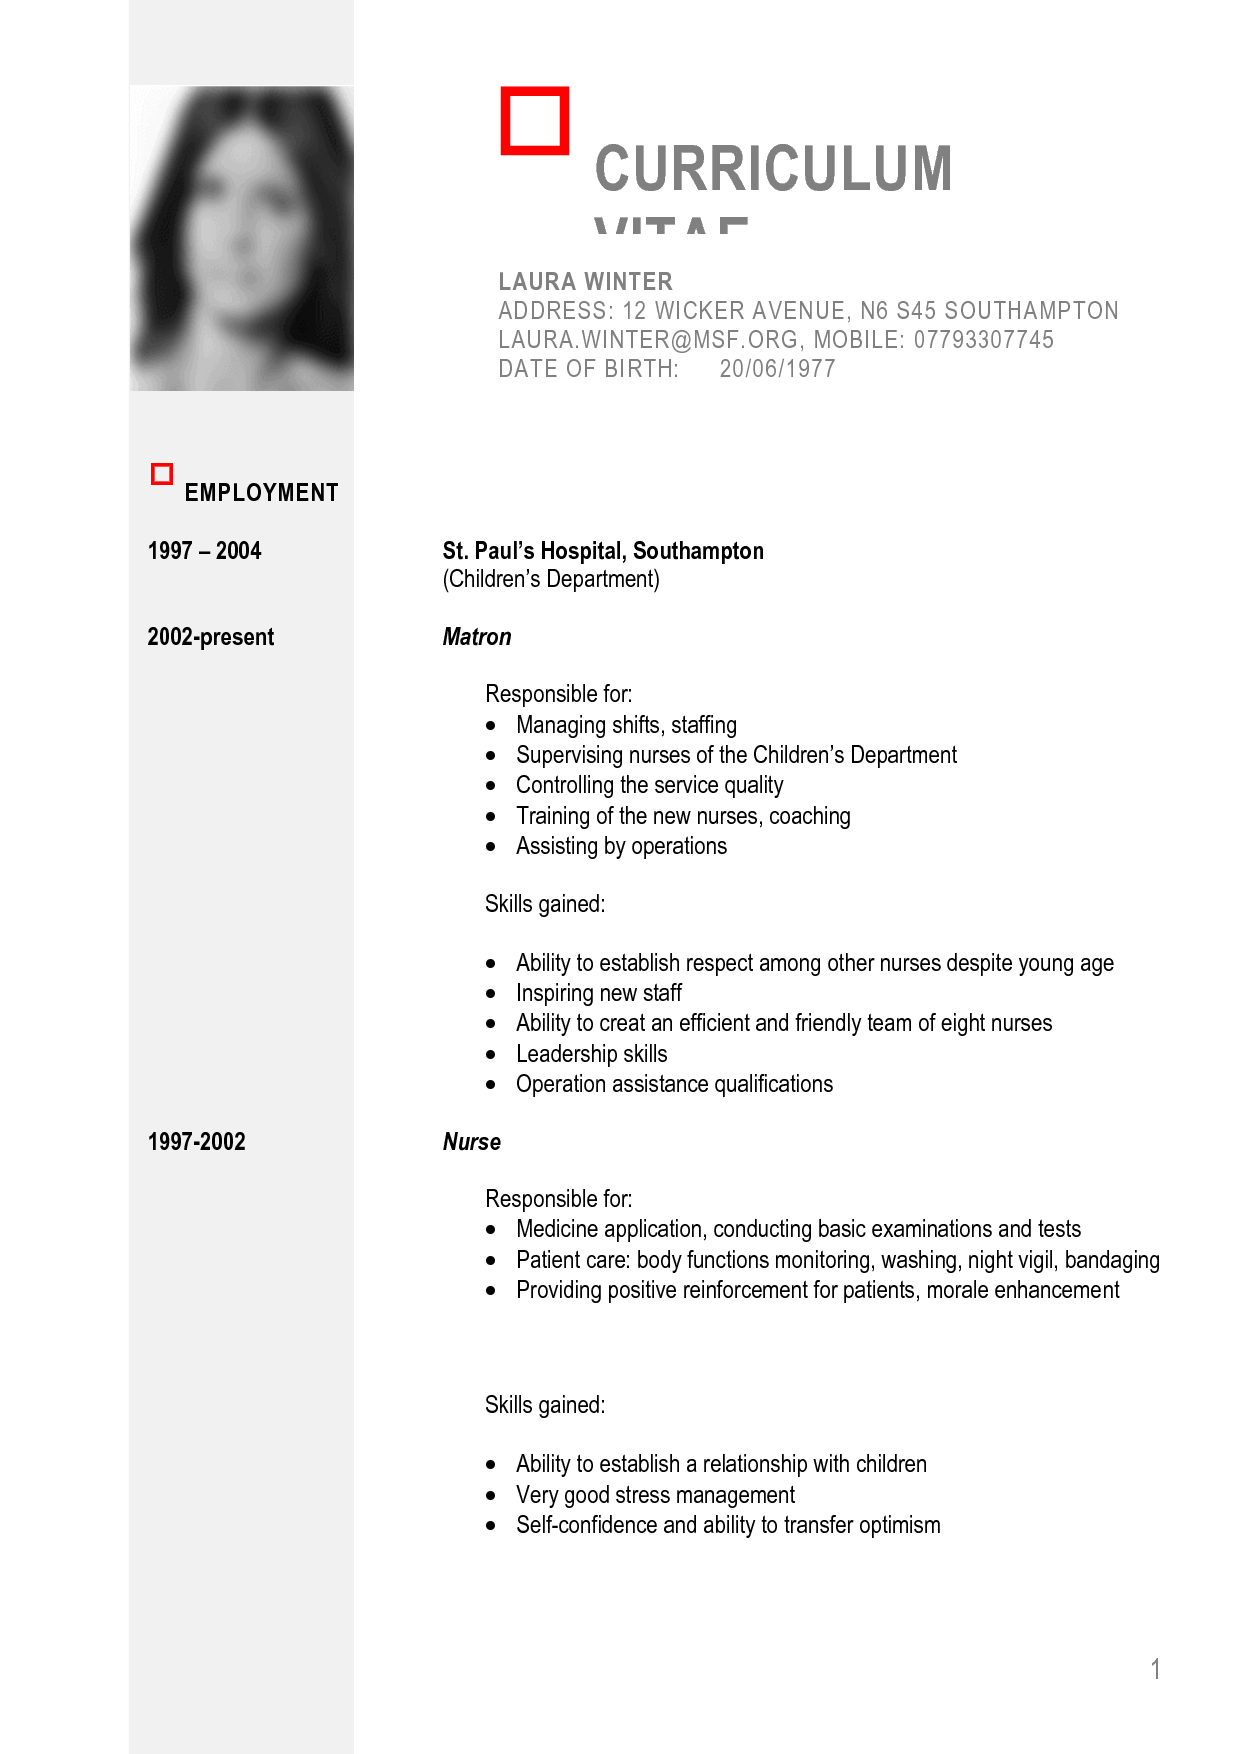 Curriculum vitae format fotolip rich image and wallpaper curriculum vitae format yelopaper Image collections